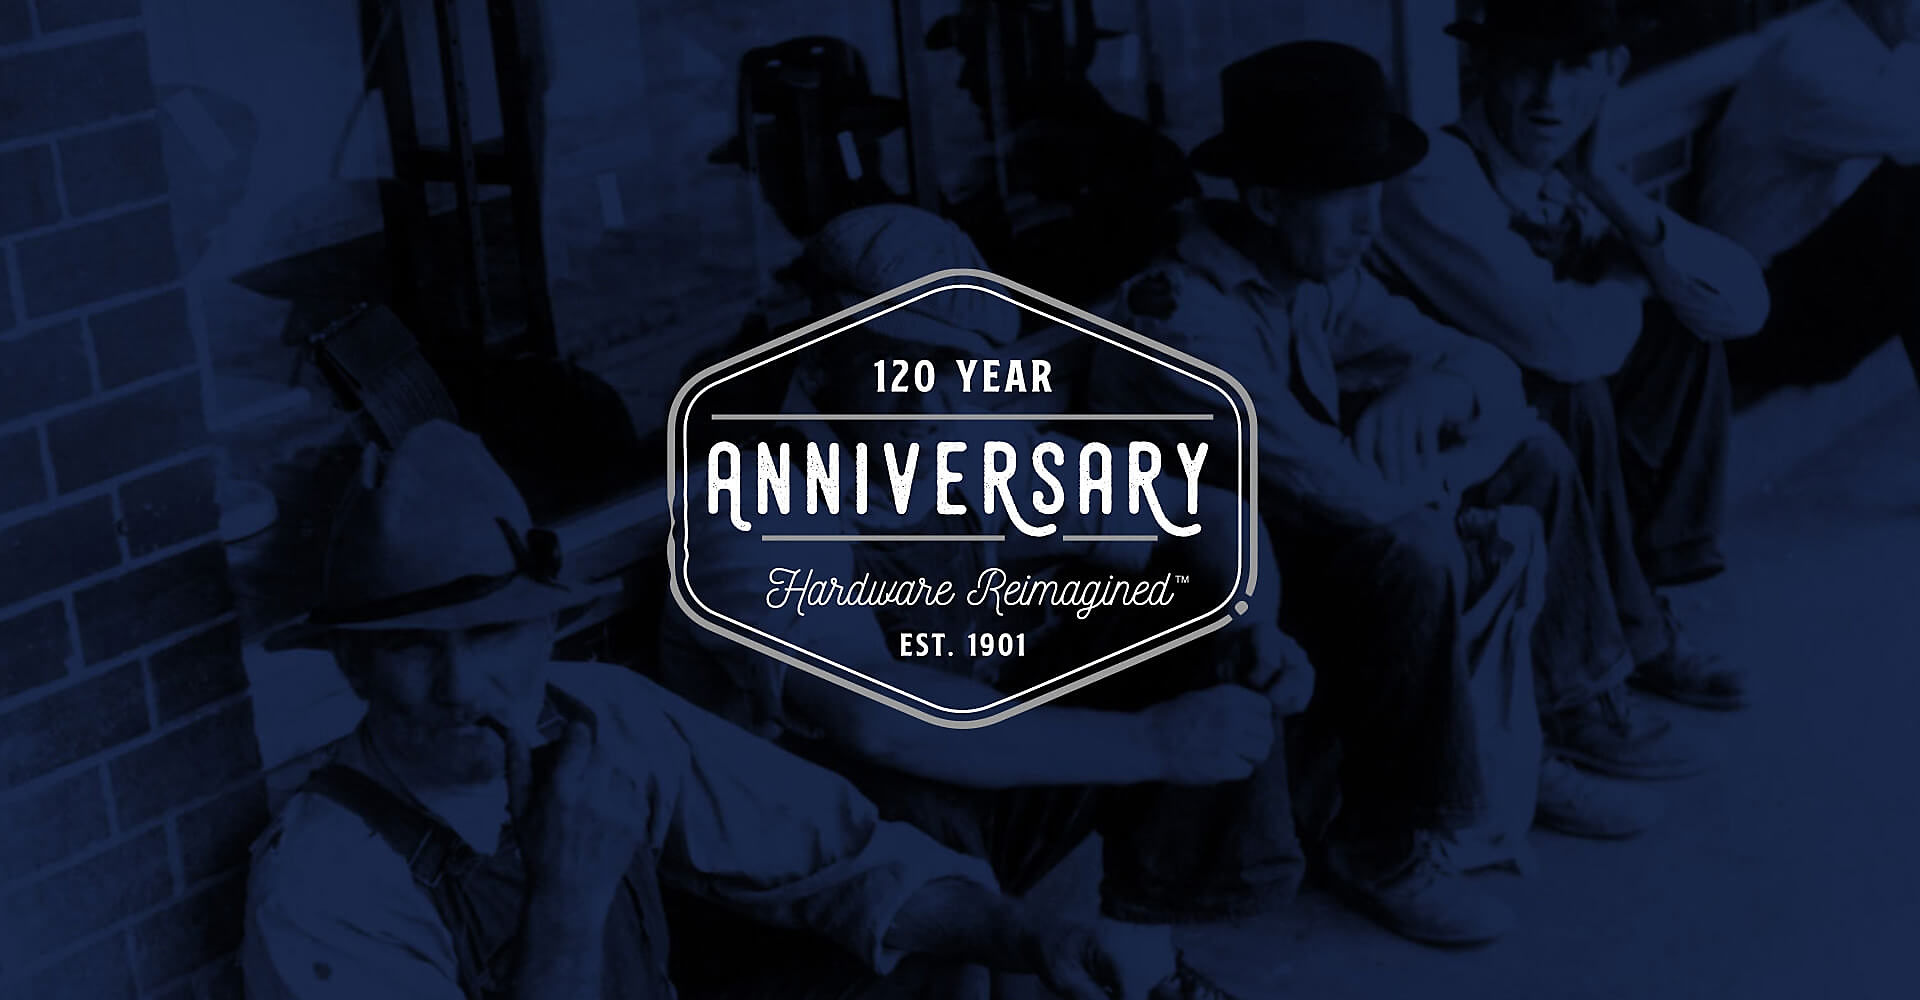 120 years of National Hardware